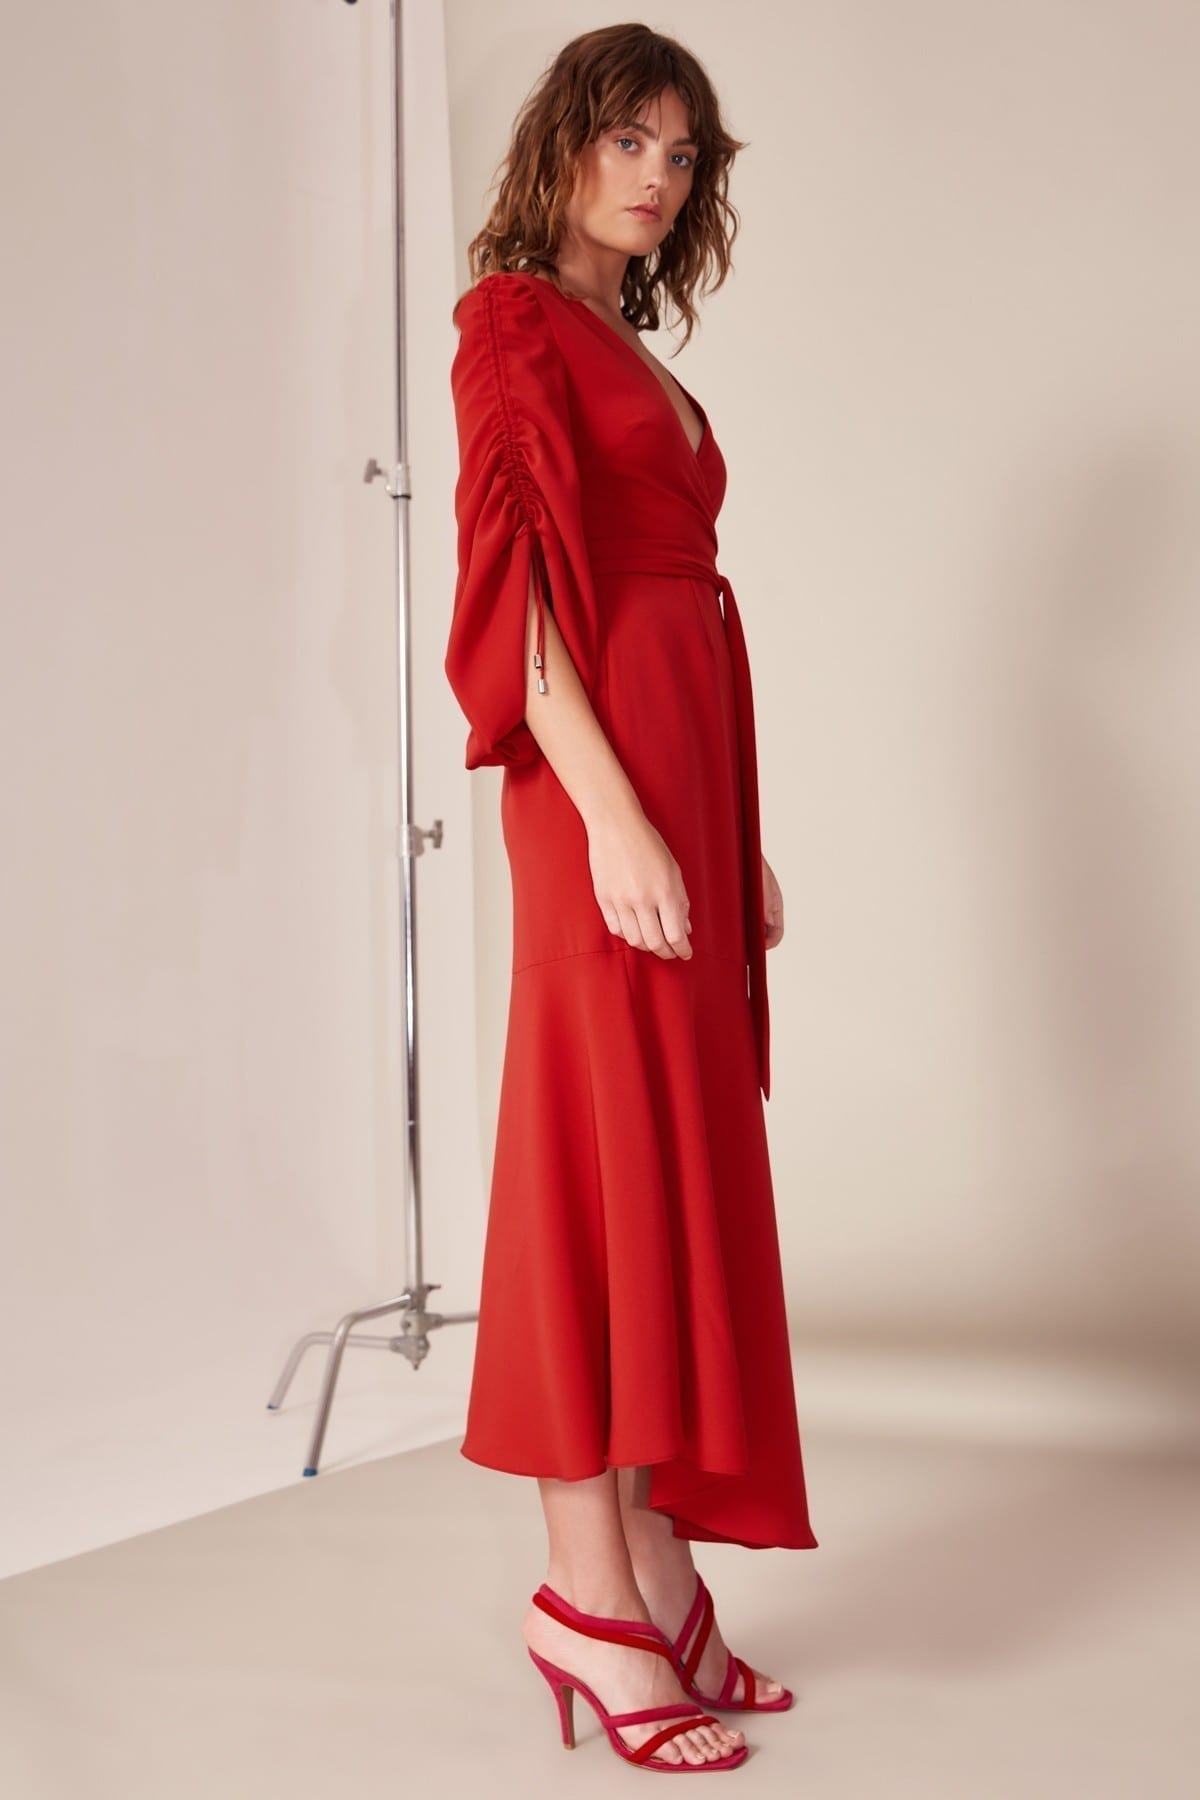 CMEO COLLECTIVE Favours Red Gown 4